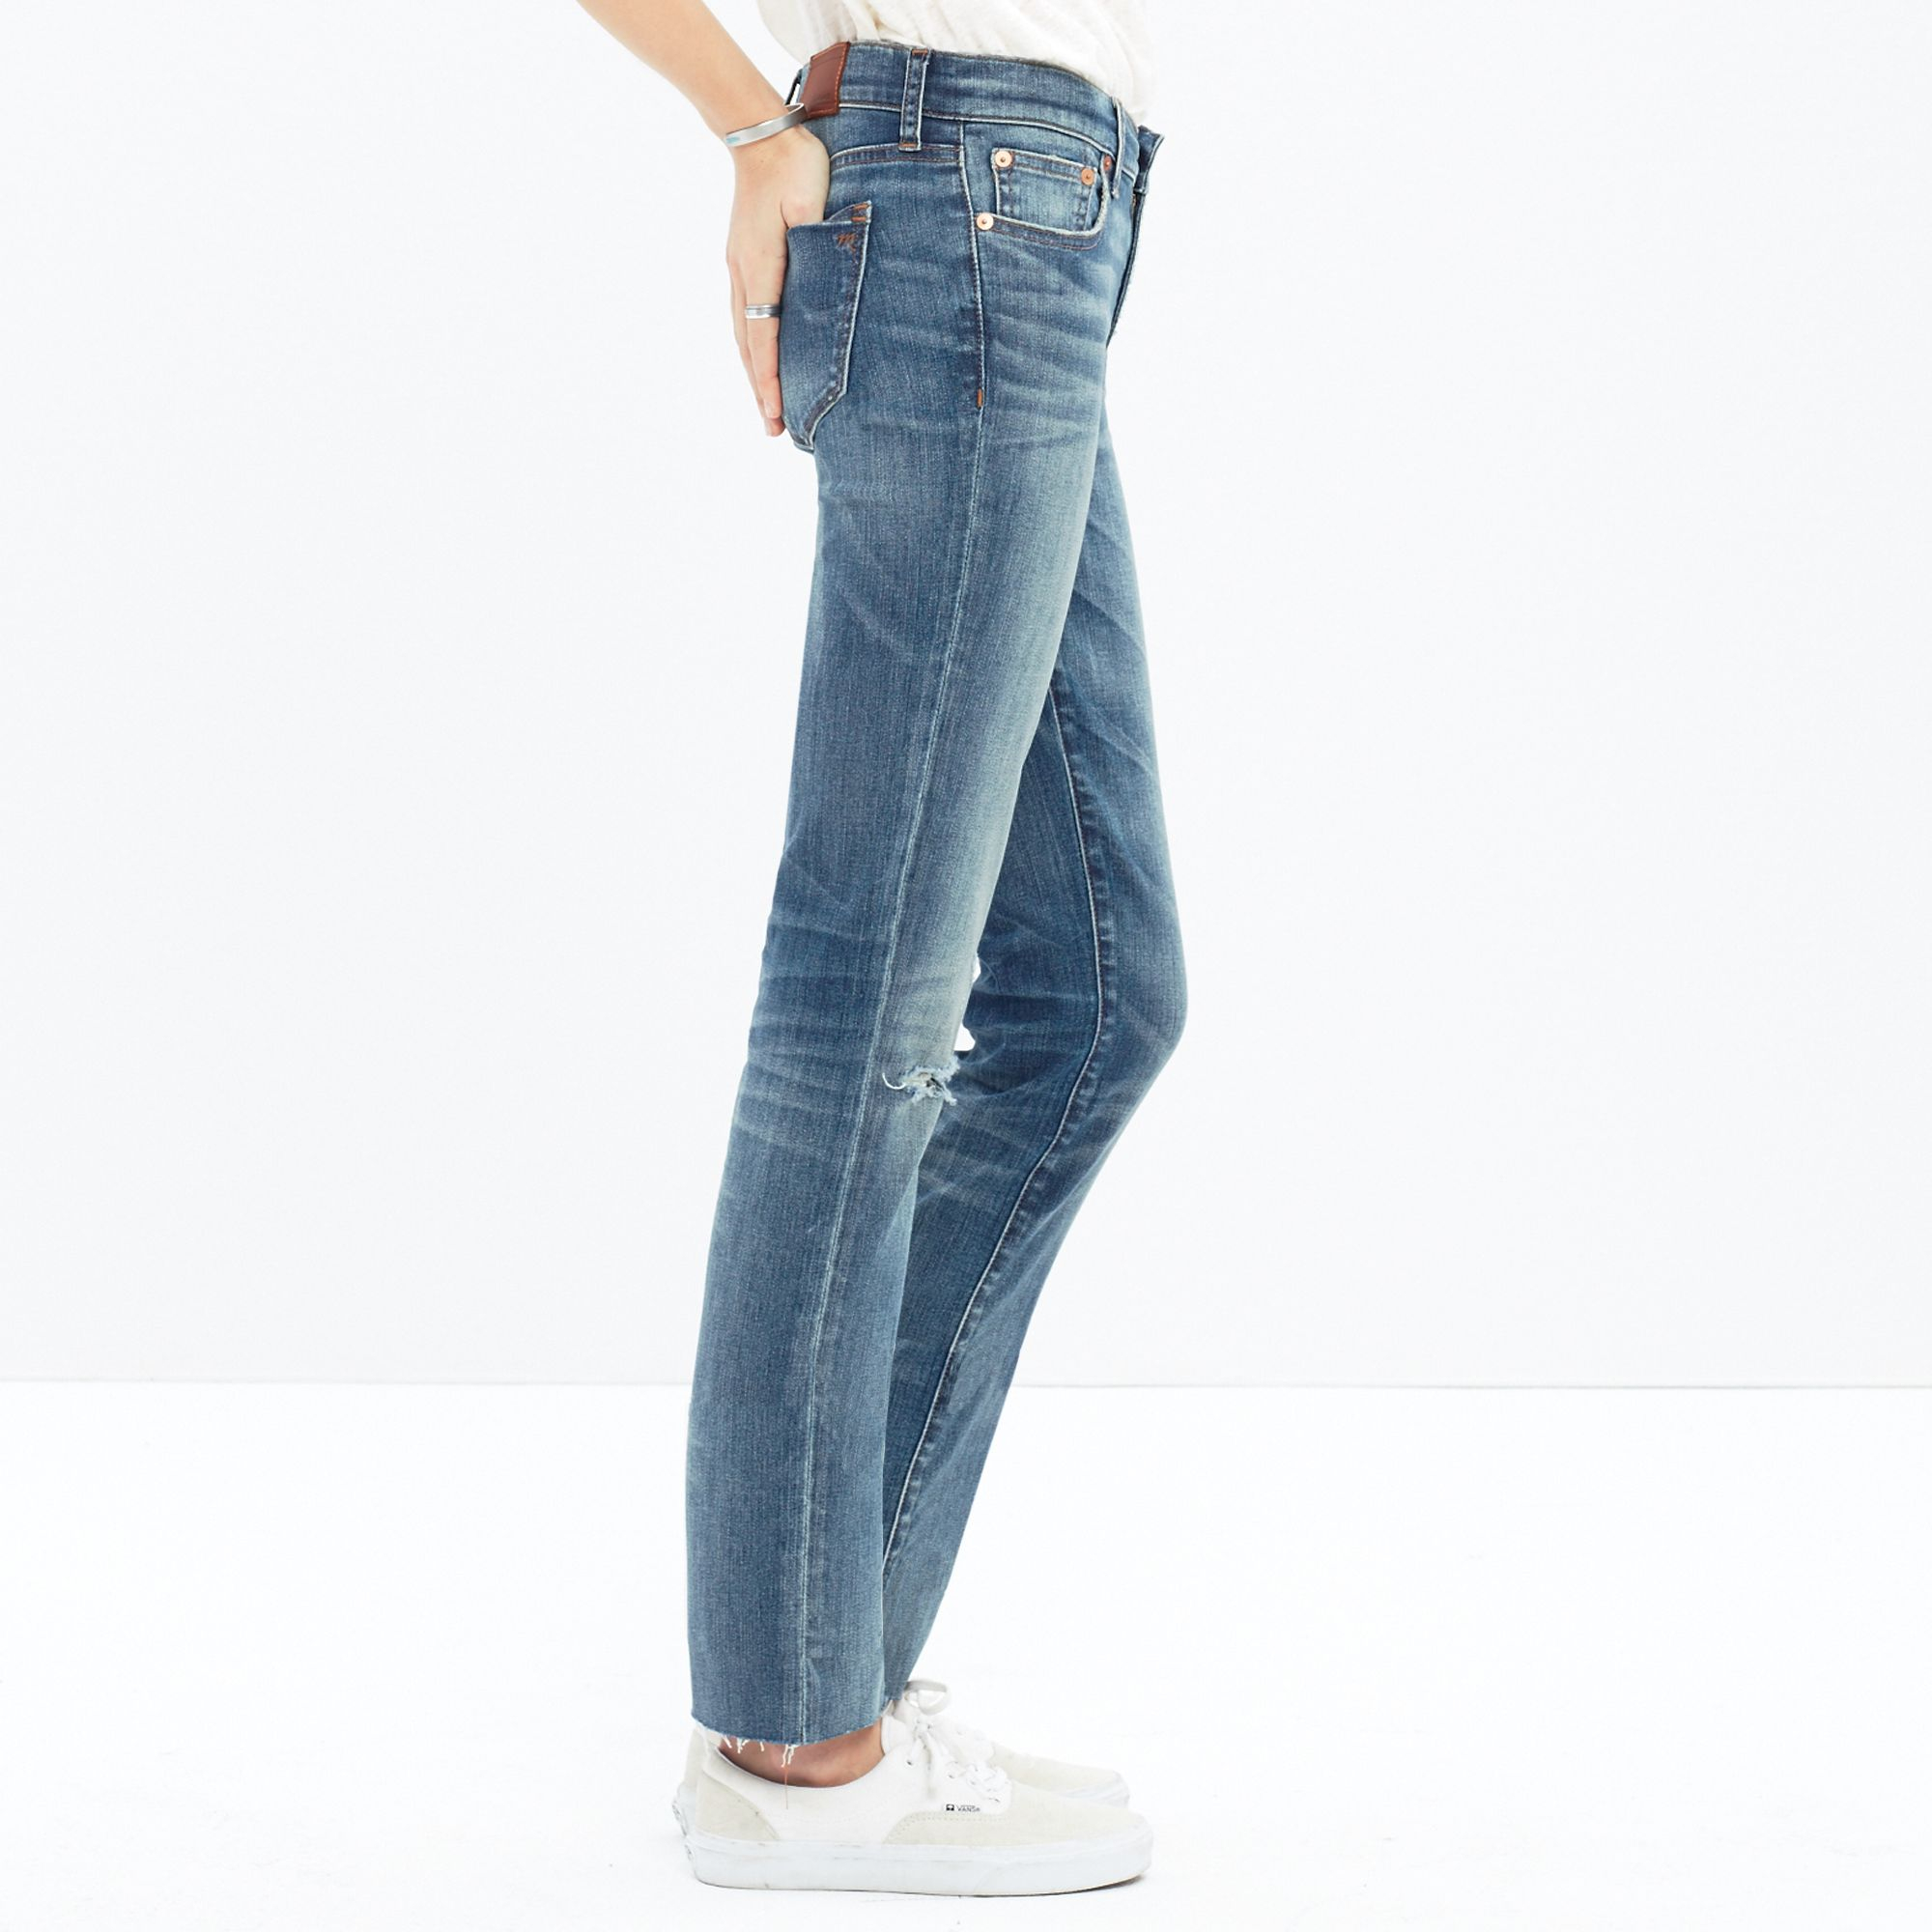 26a23a7052381 Lyst - Madewell Alley Straight Crop Jeans  Drop-hem Edition in Blue